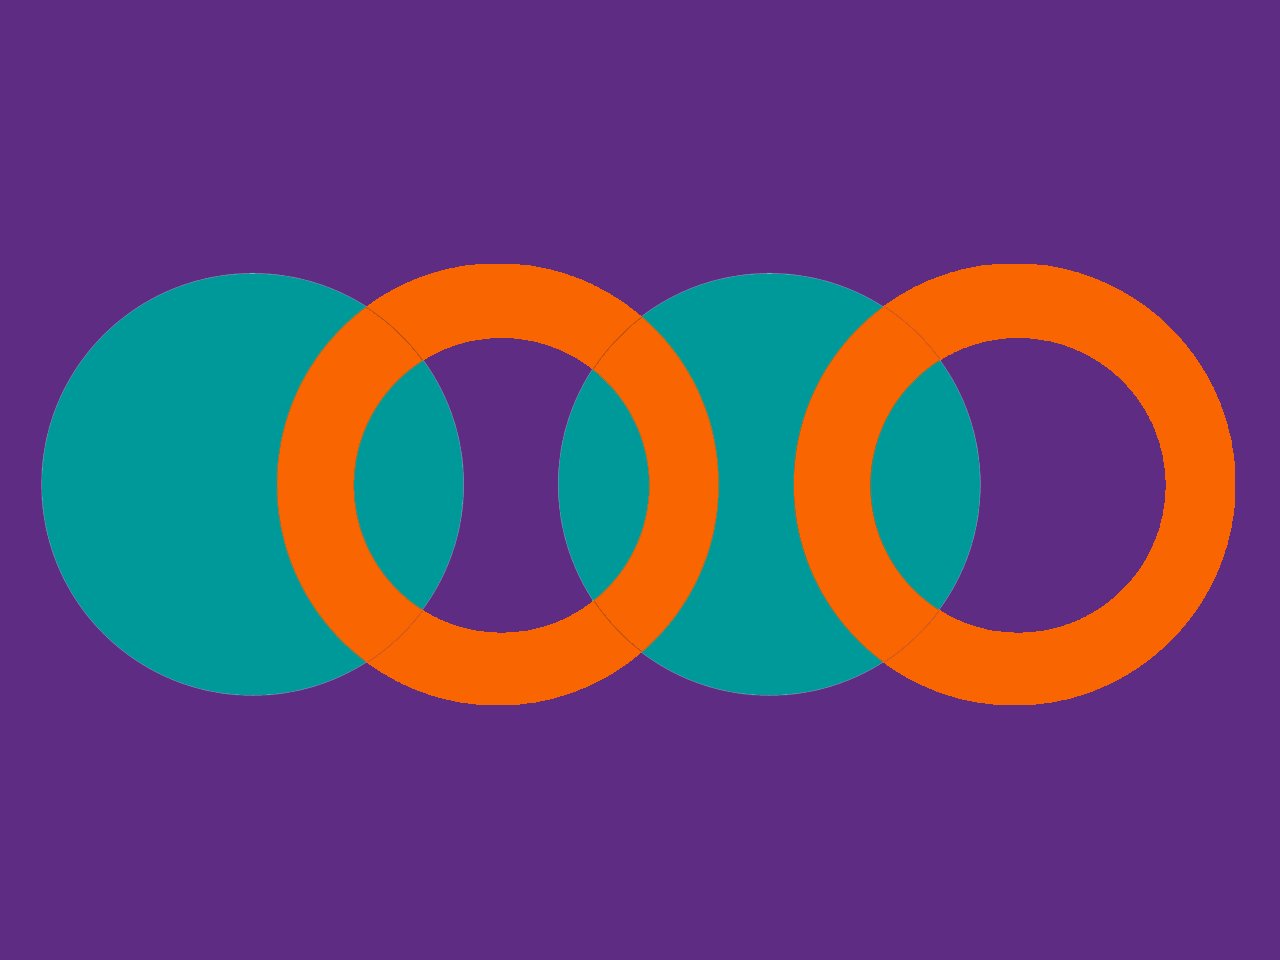 Purple background with orange rings and teal overlapping circles